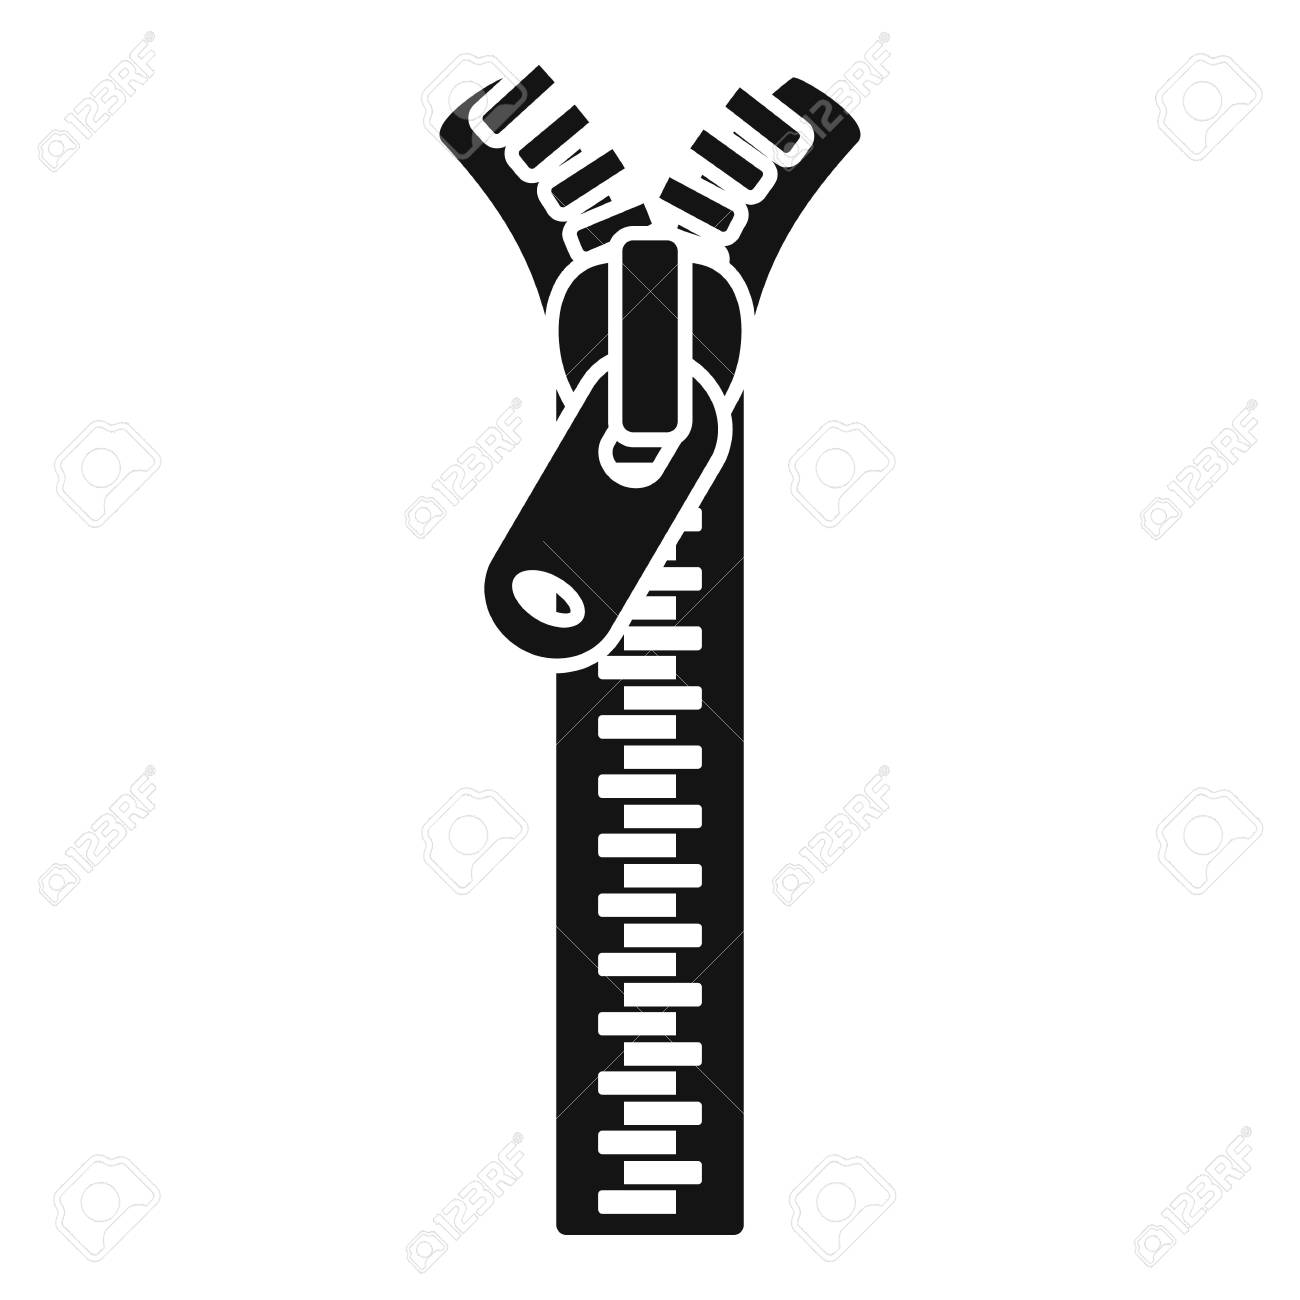 Jacket zipper icon. Simple illustration of jacket zipper vector icon for web design isolated on white background - 126144350